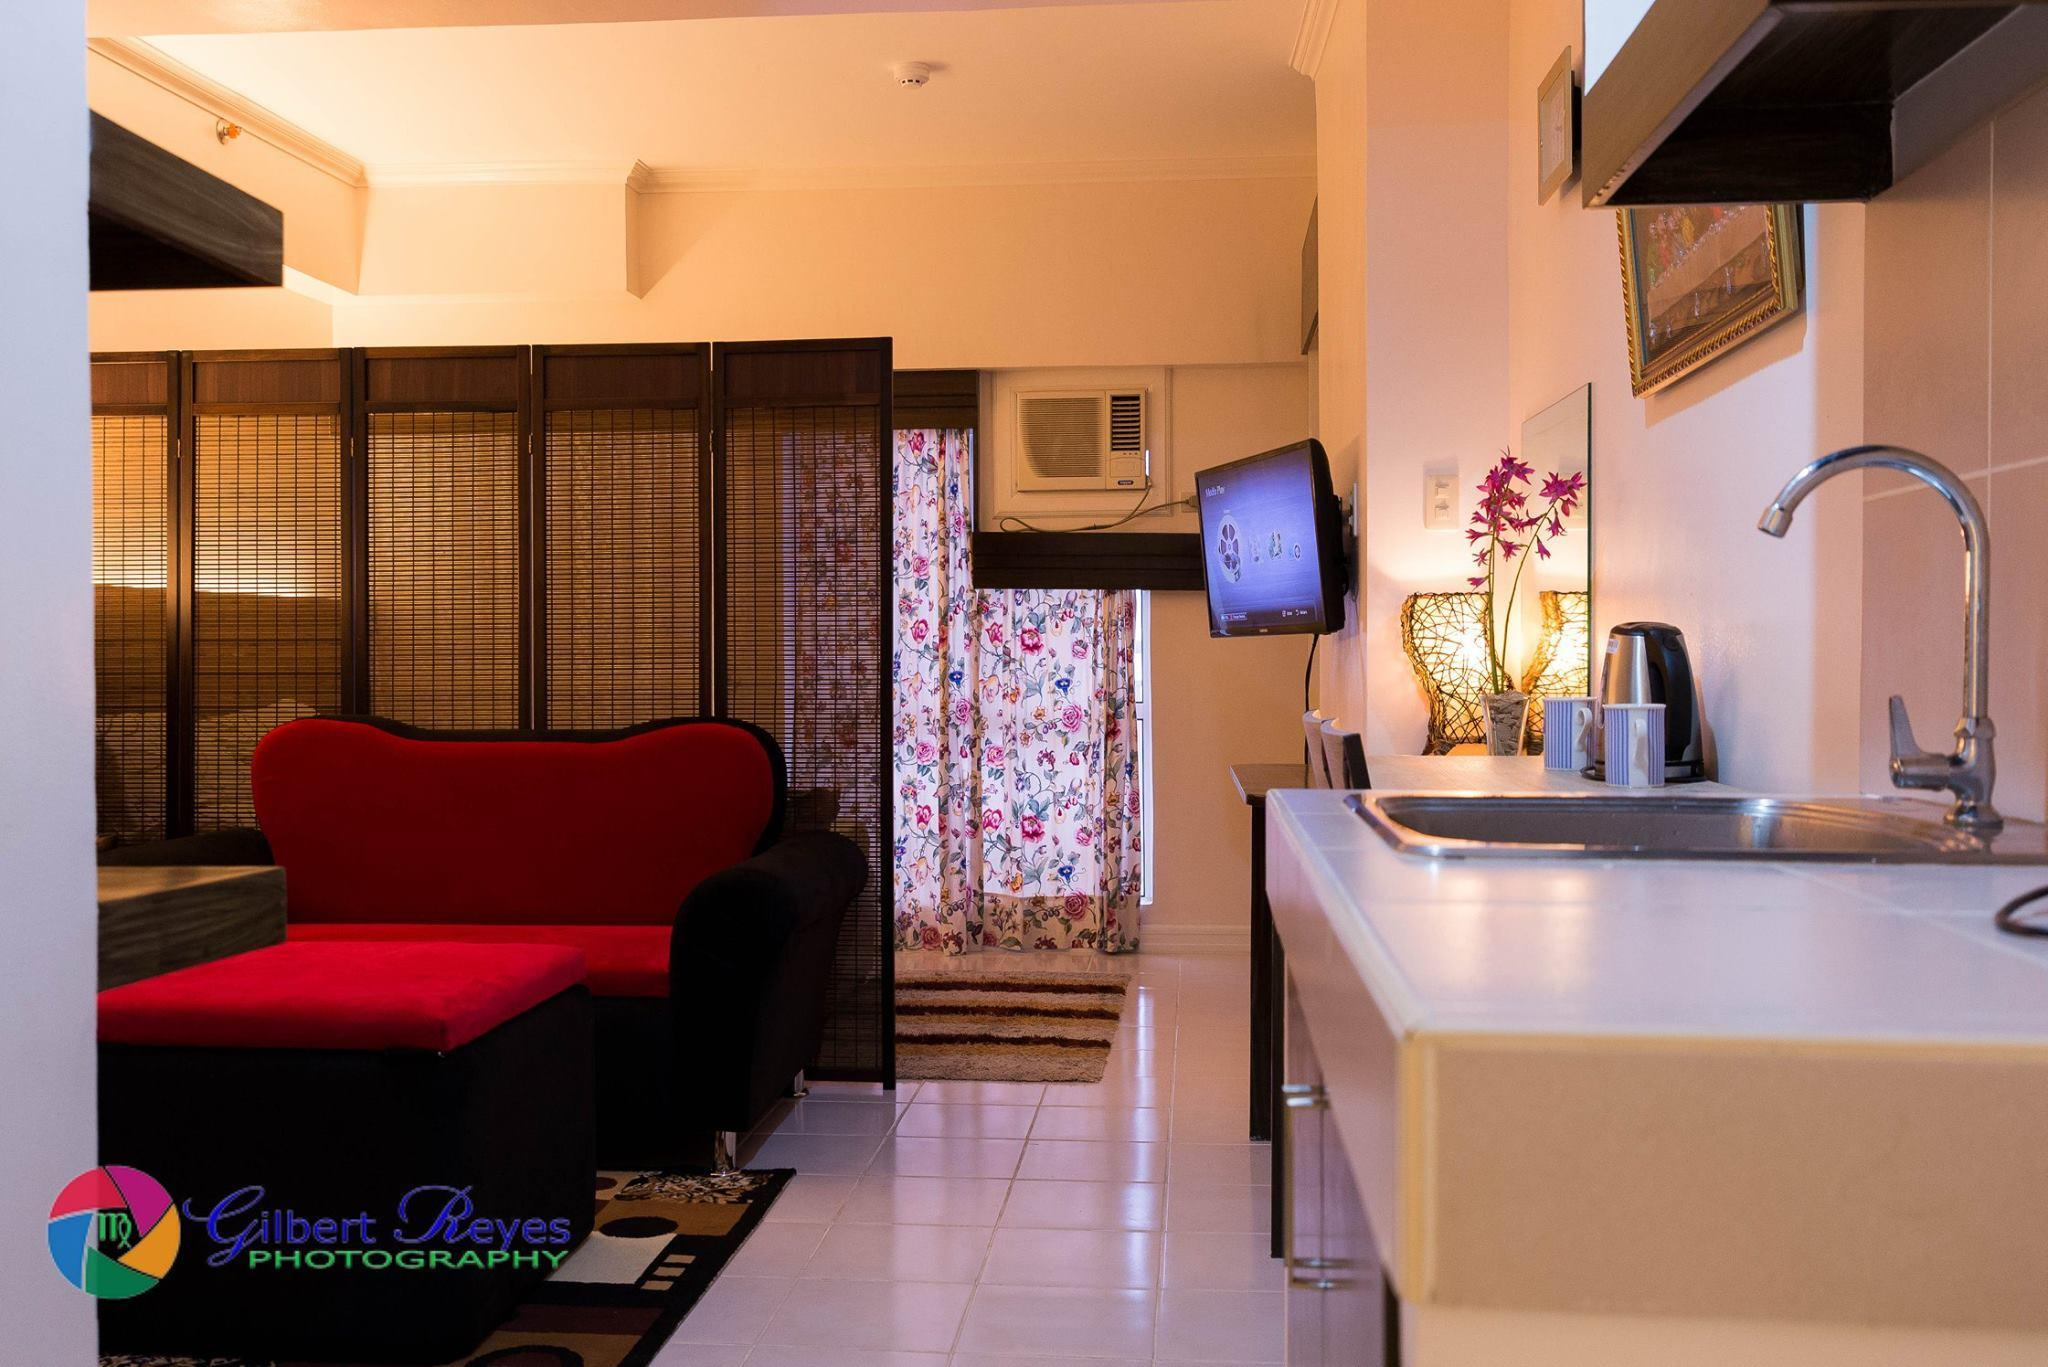 tagaytay hotels, philippines: great savings and real reviews